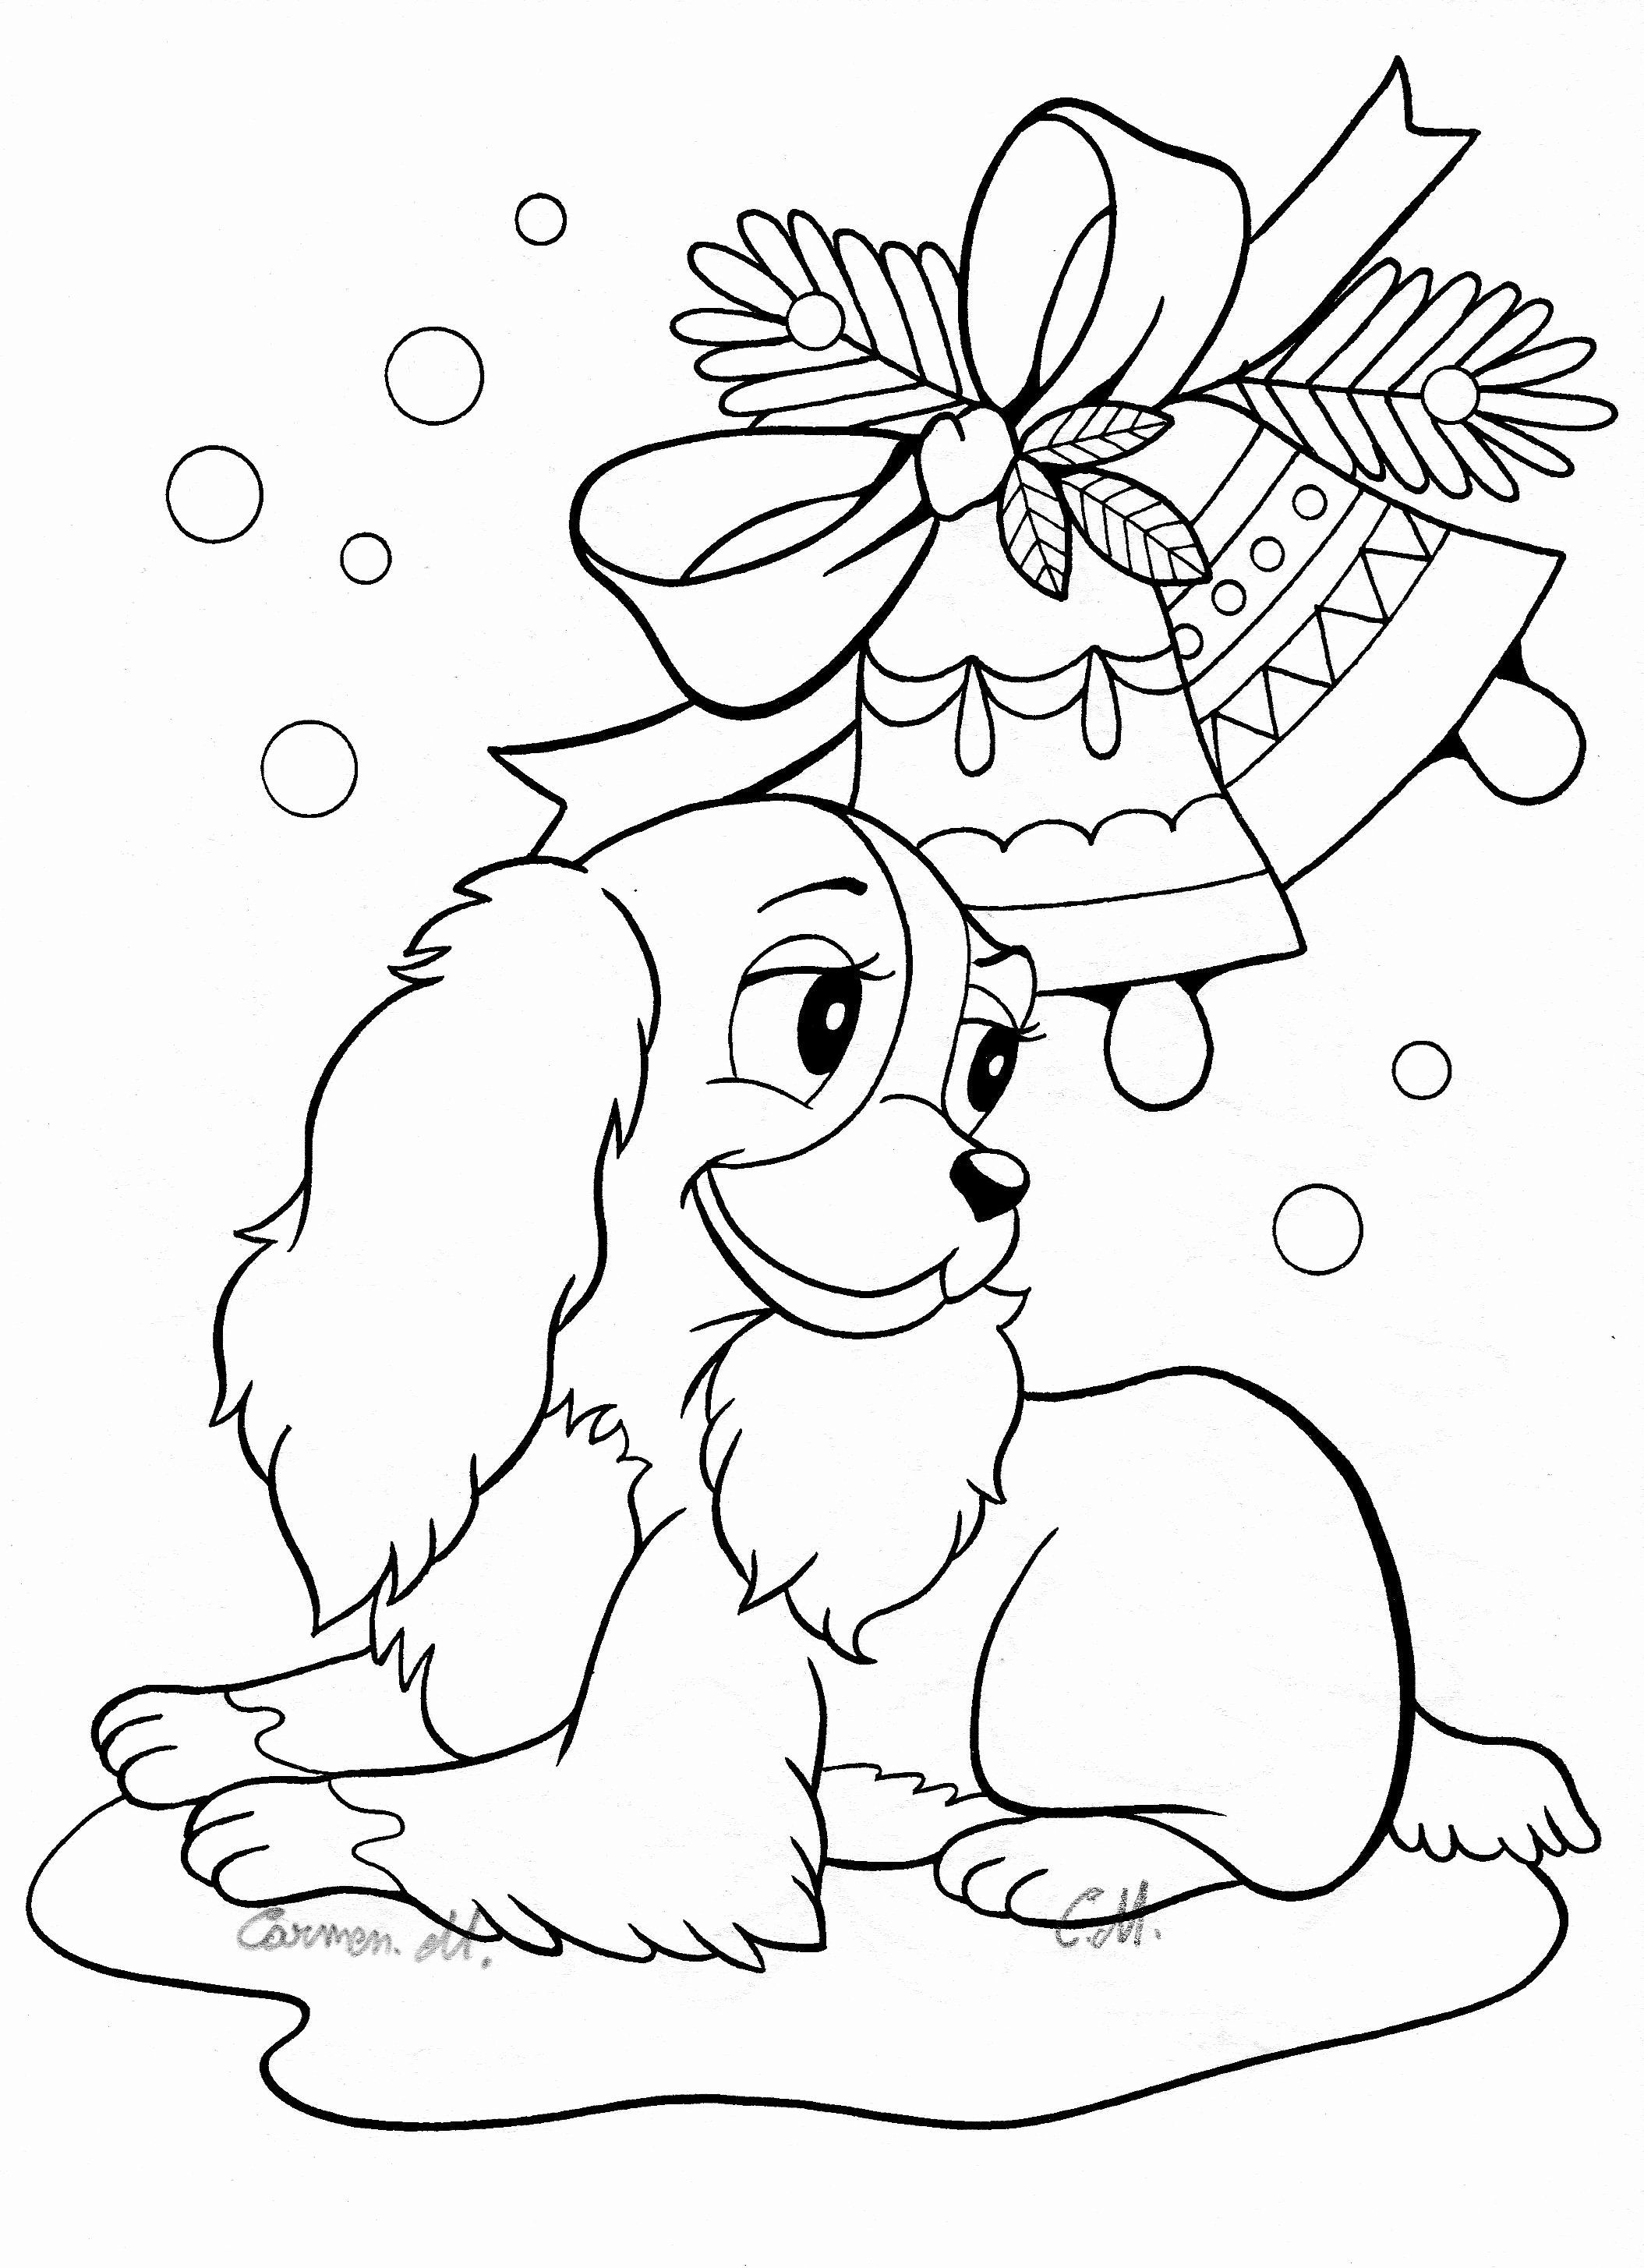 Warrior Princess Coloring Pages In